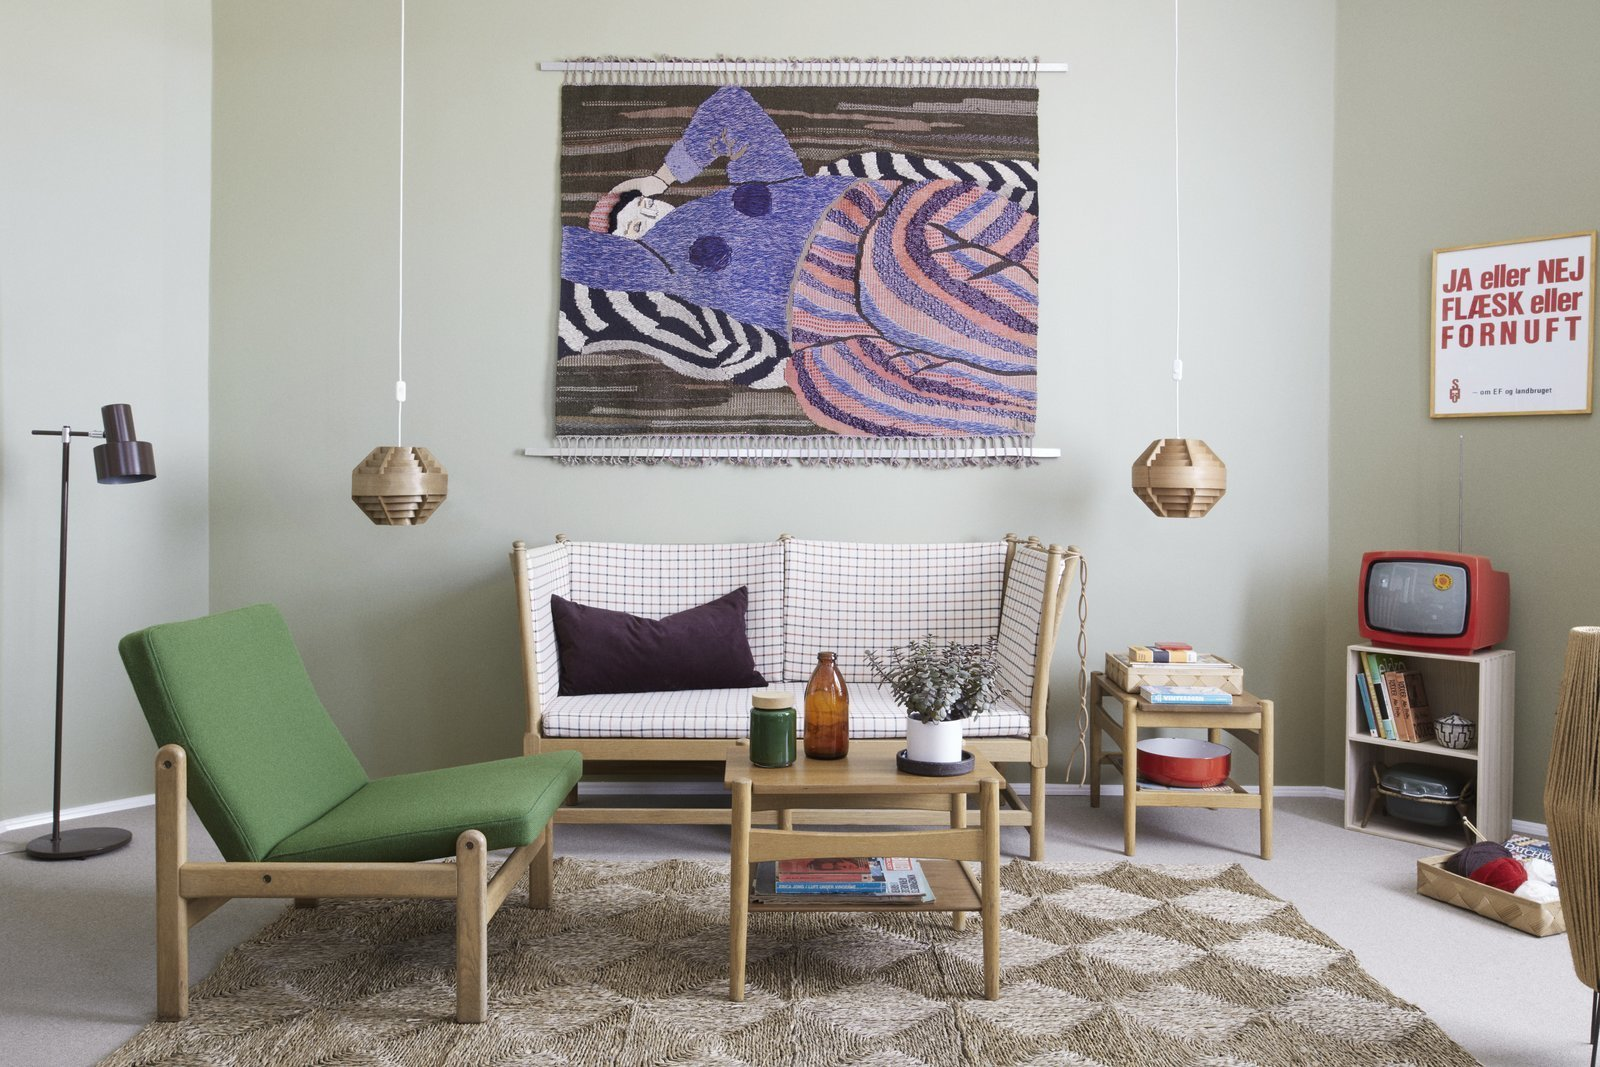 Tagged: Living Room, End Tables, Chair, Coffee Tables, Rug Floor, Pendant Lighting, and Sofa.  Photo 1 of 9 in Get Your Fix of Midcentury Scandinavian Design at This Copenhagen Hotel